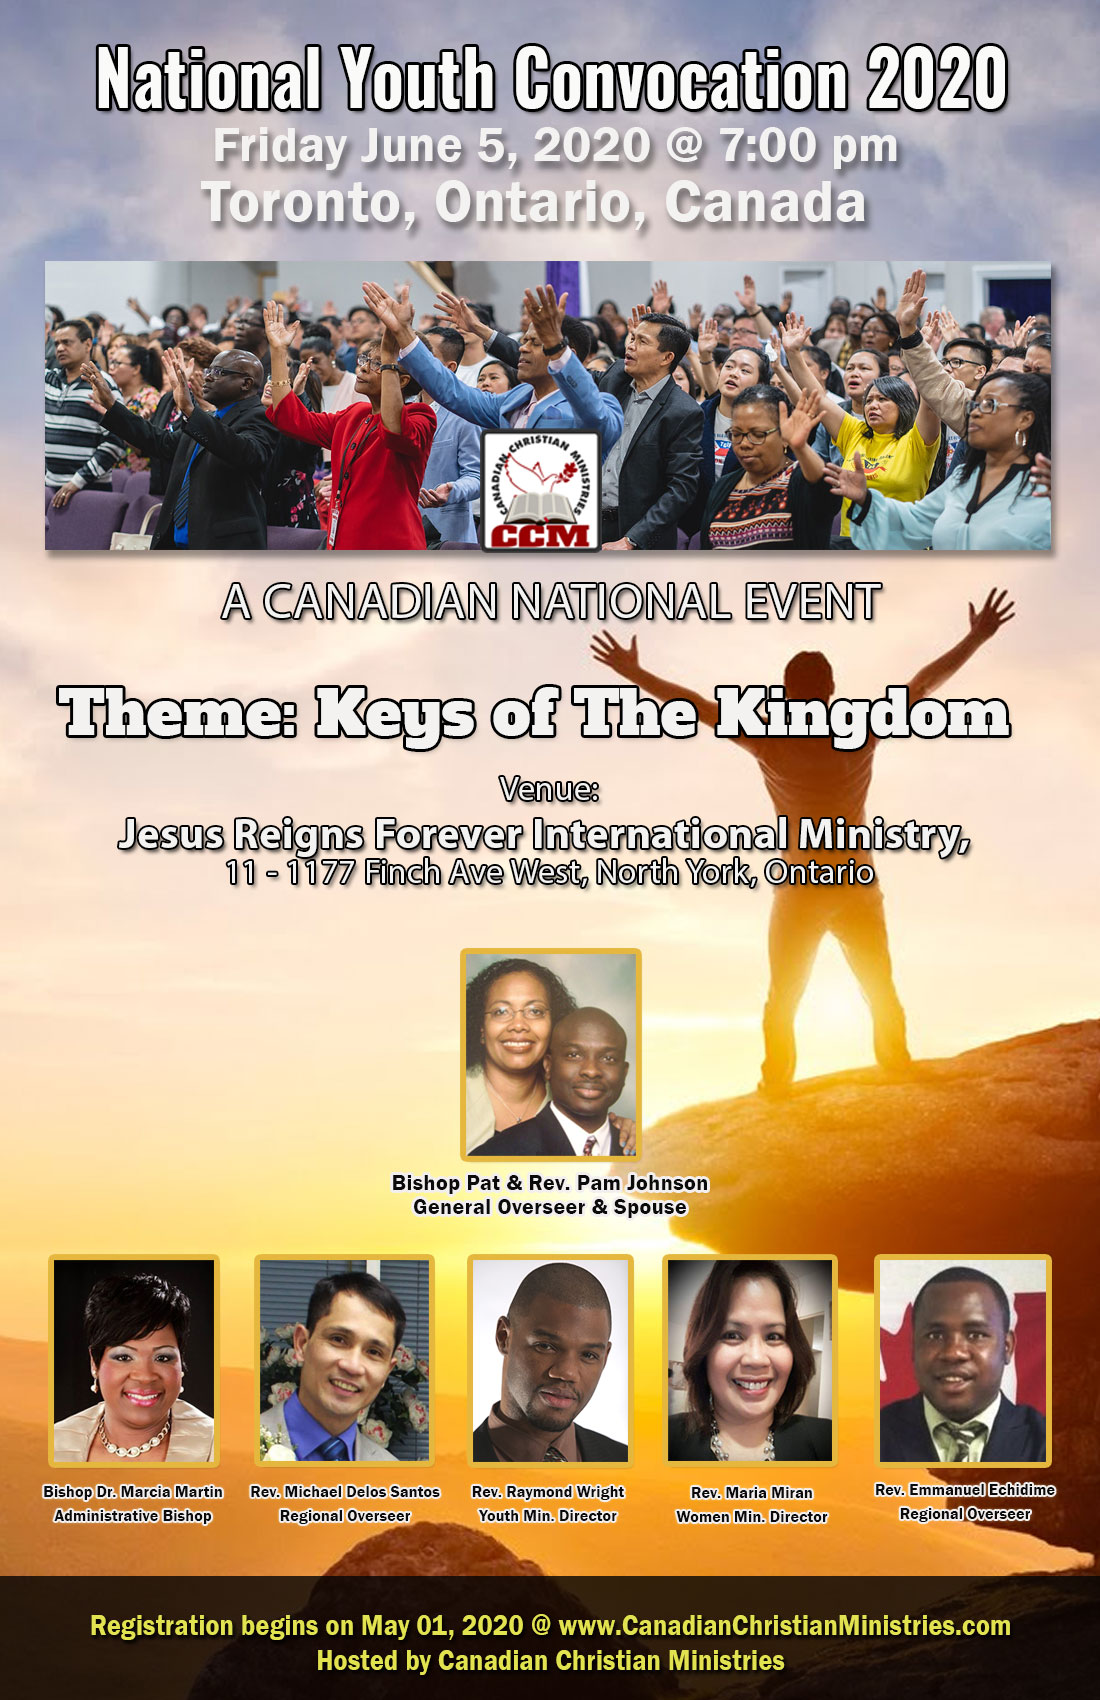 Friday June 5, 2020 - National Youth Convocation